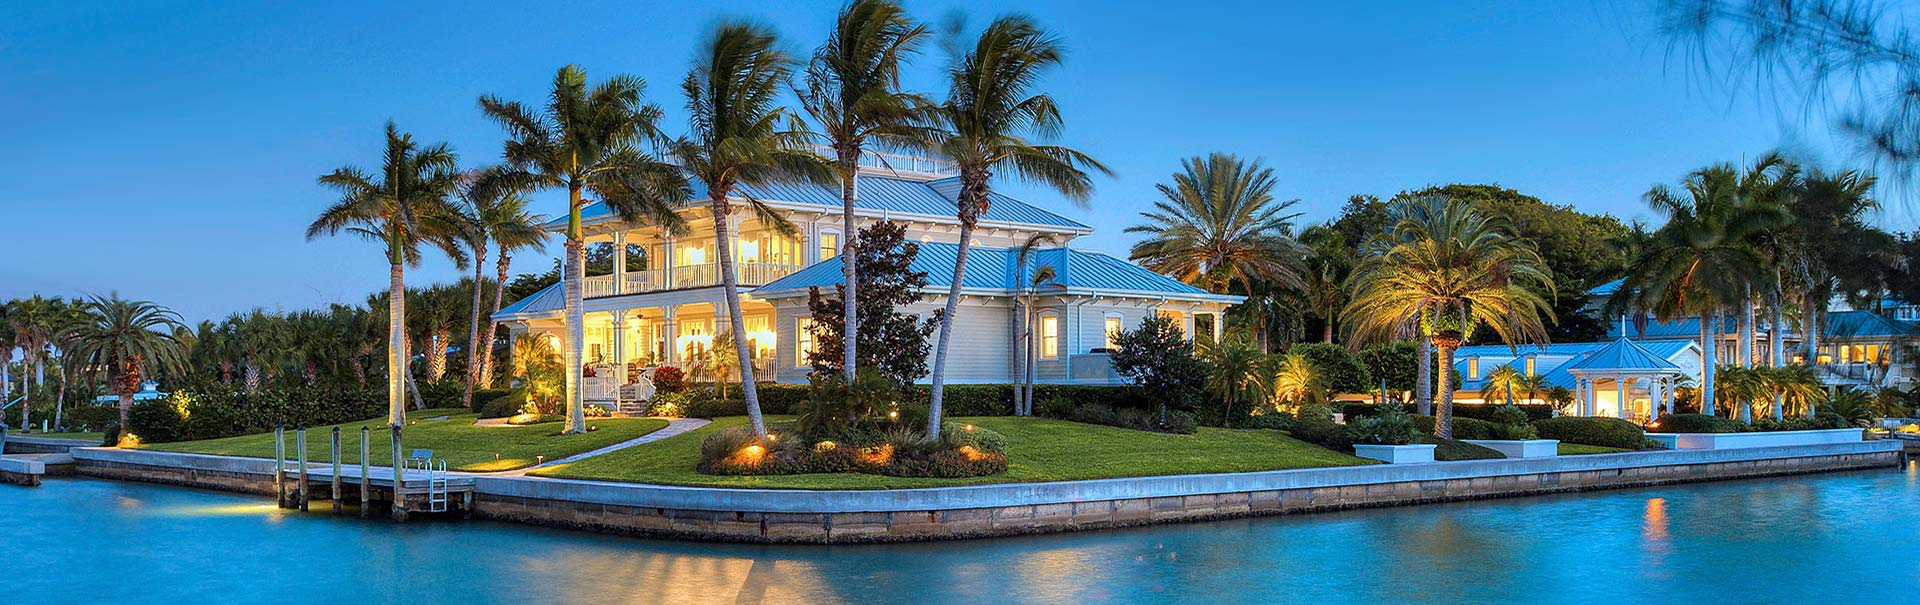 Florida home sales, median prices, new listings up